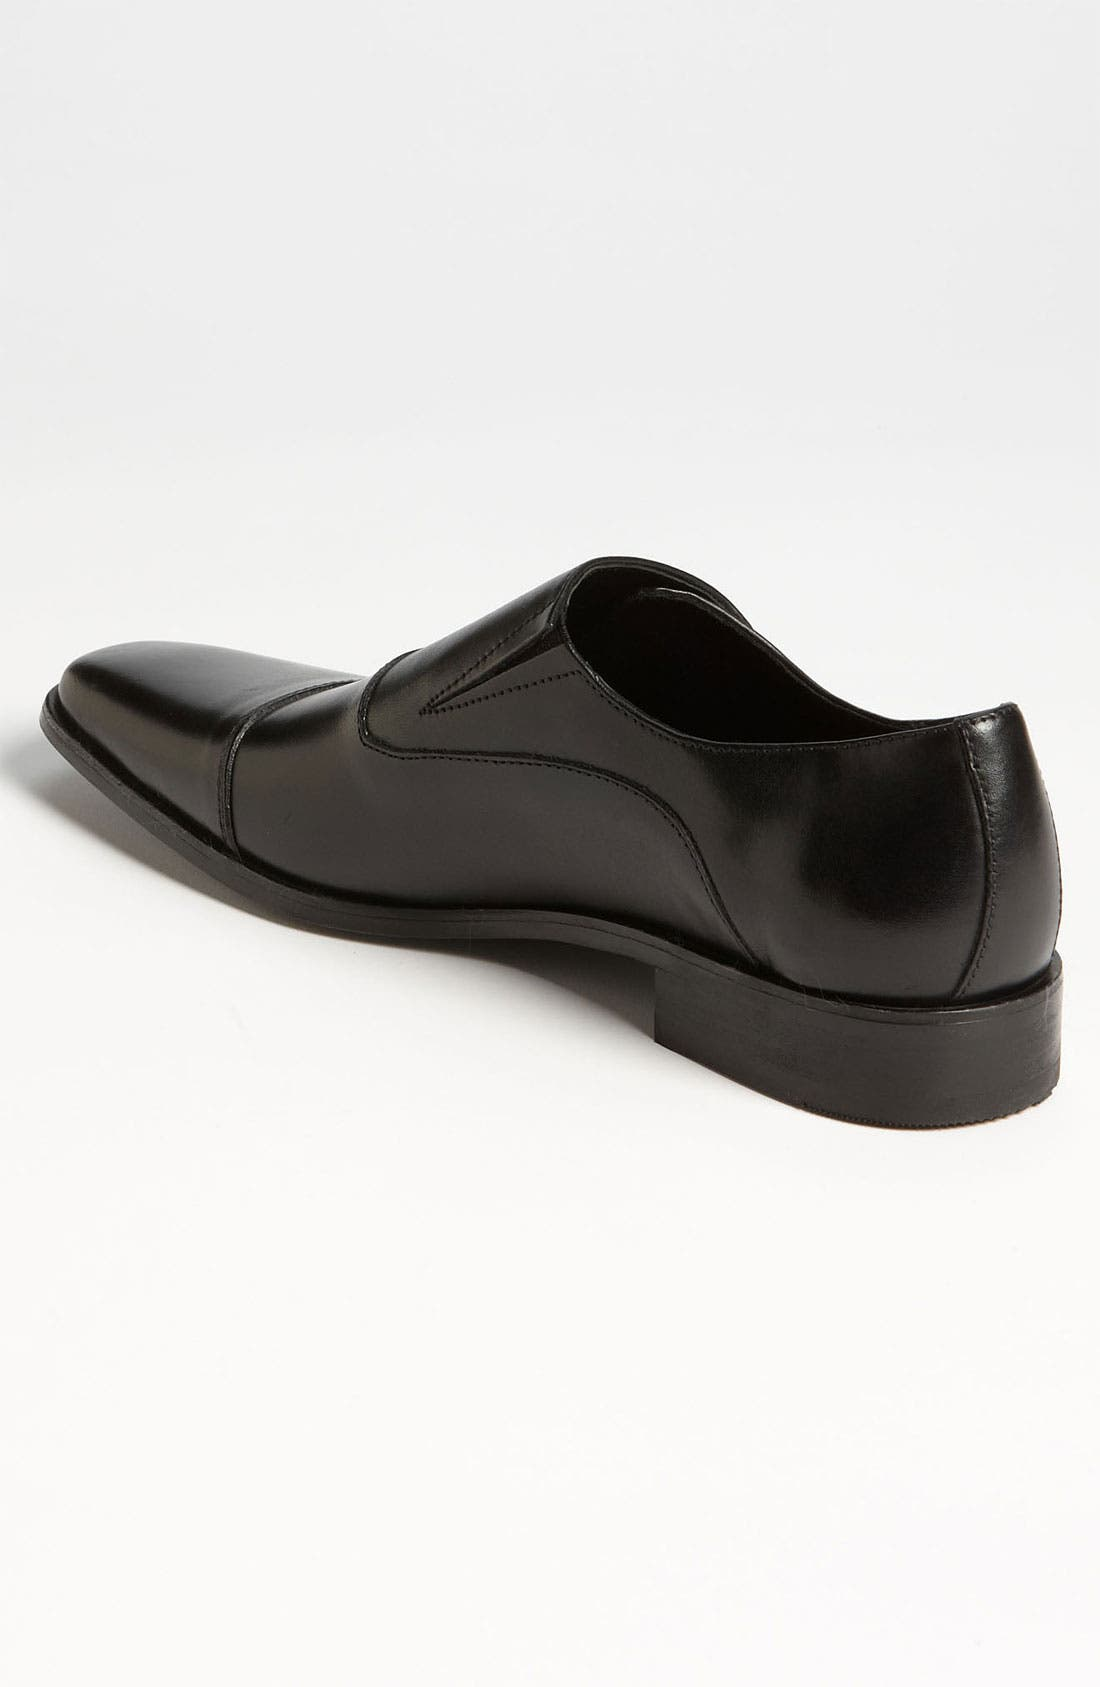 Alternate Image 2  - Kenneth Cole New York 'Fancy First' Double Monk Strap Slip-On